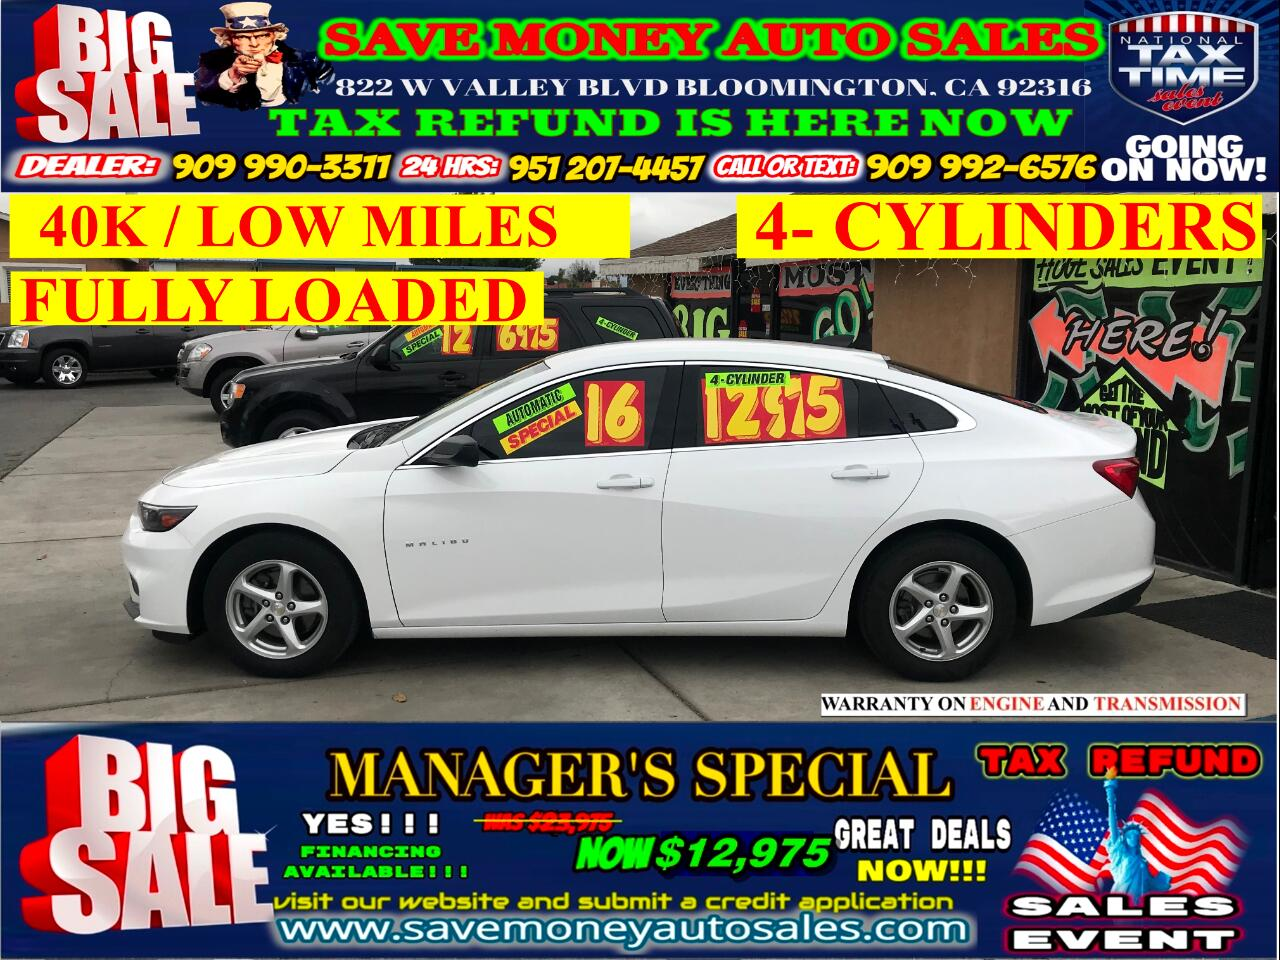 2016 Chevrolet Malibu LS> LOW MILES> 40K> FULLY LOADED